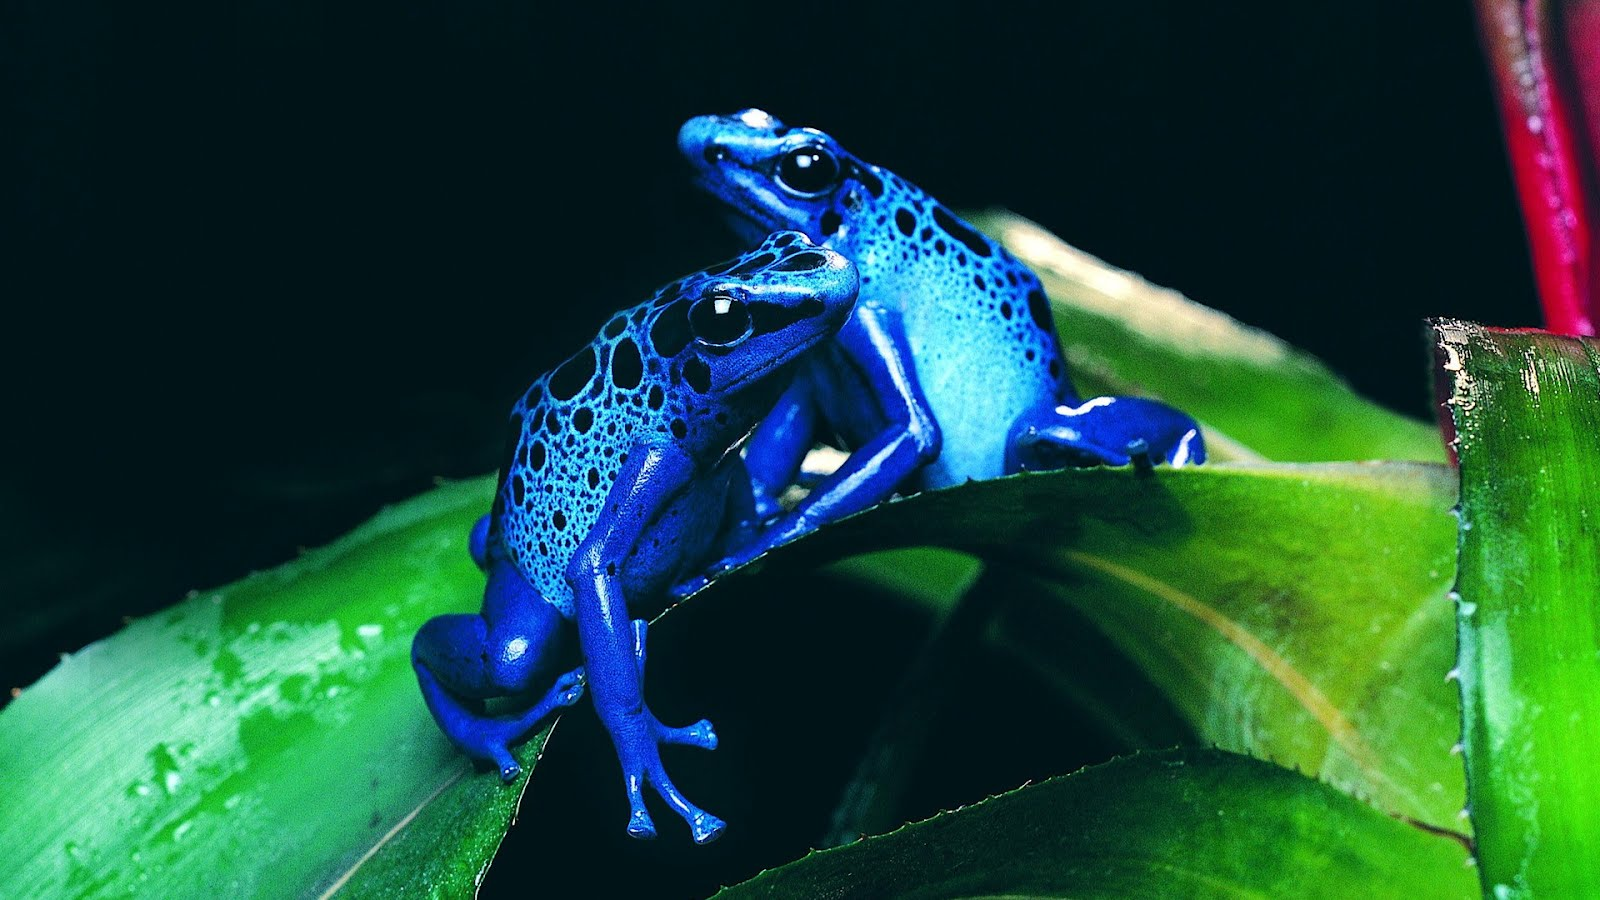 Banco de im genes gratis ranas azules venenosas en las - All animals hd wallpapers ...